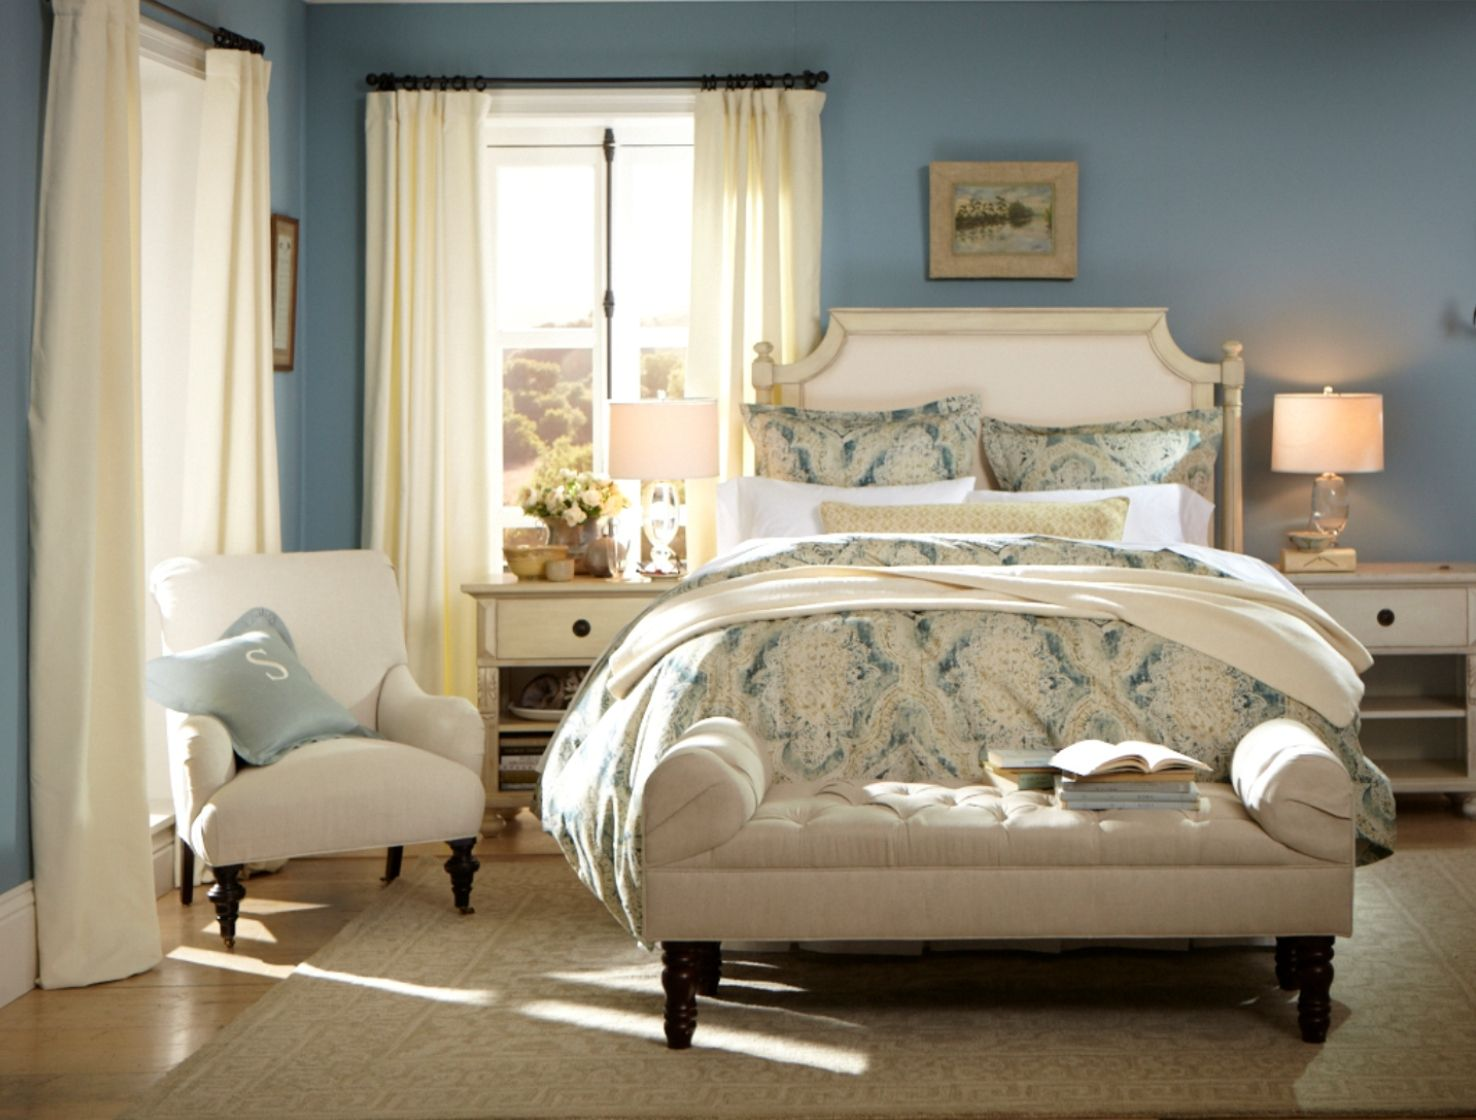 pottery barn bedrooms bedroom featuring paint color smokey blue sw 7604 from 12930